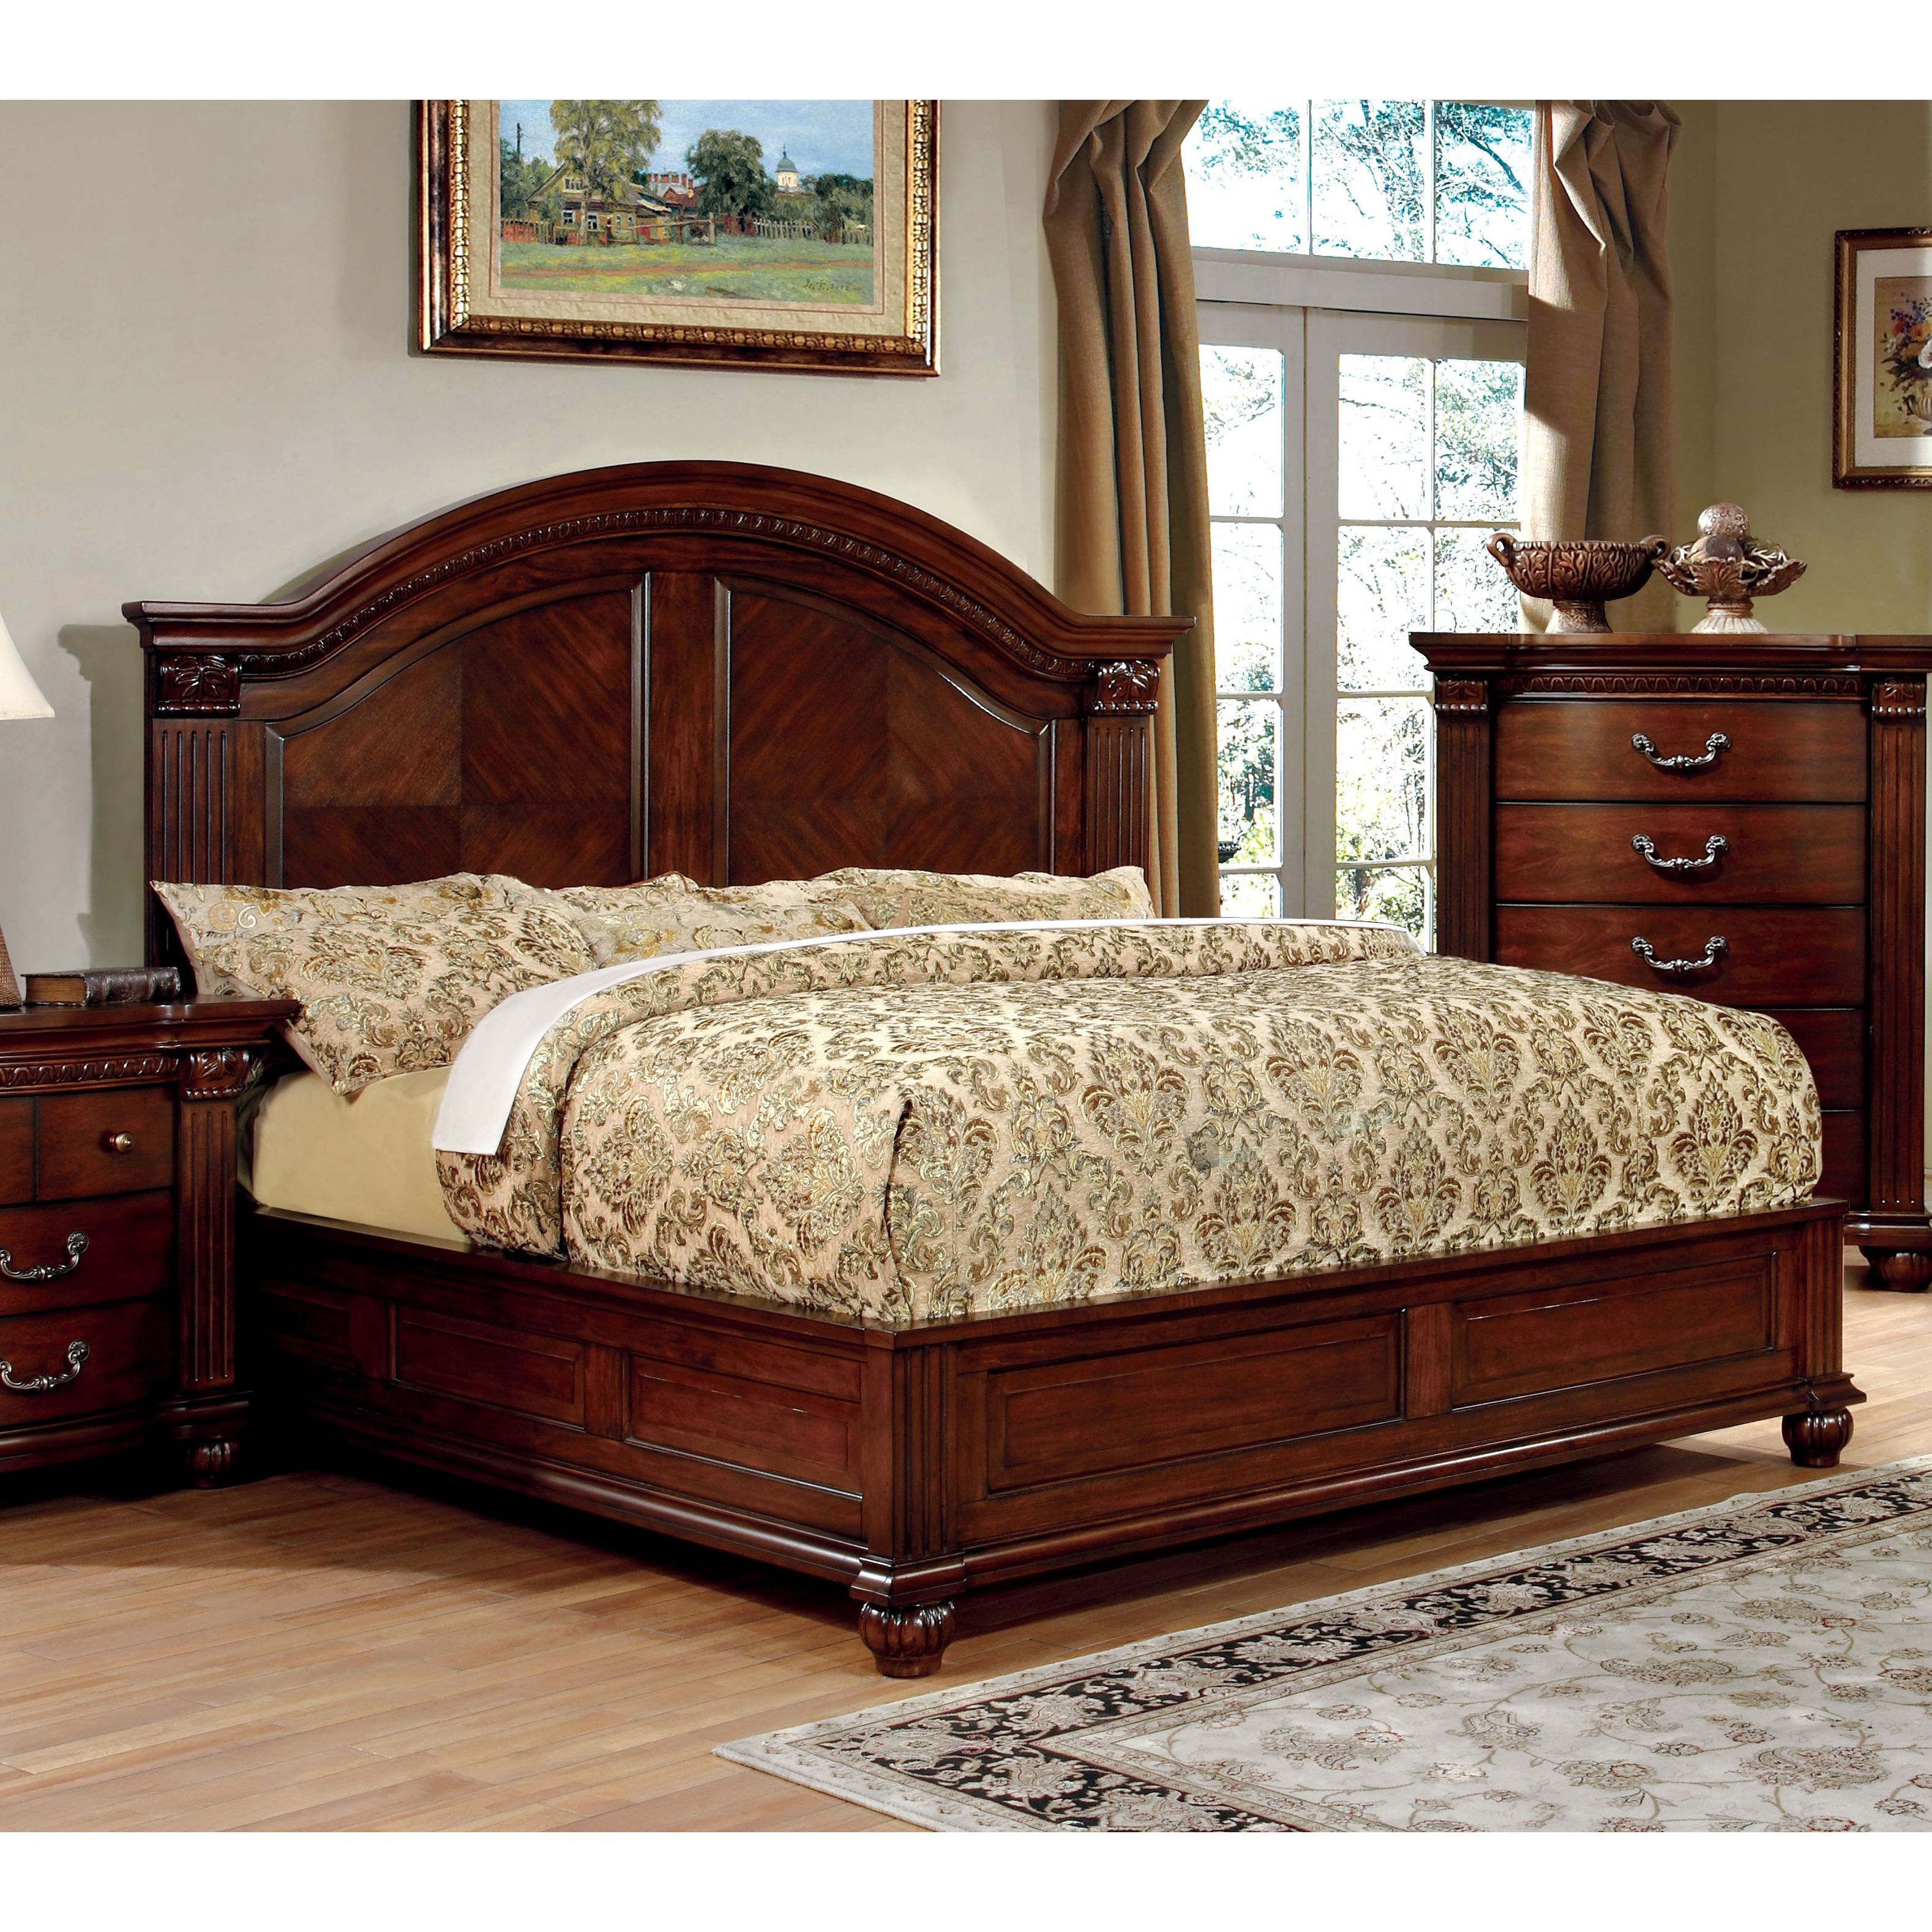 Furniture of America Vayne I Traditional Cherry Platform Bed  Cal  King    Brown. Furniture of America Vayne I Traditional Cherry Platform Bed